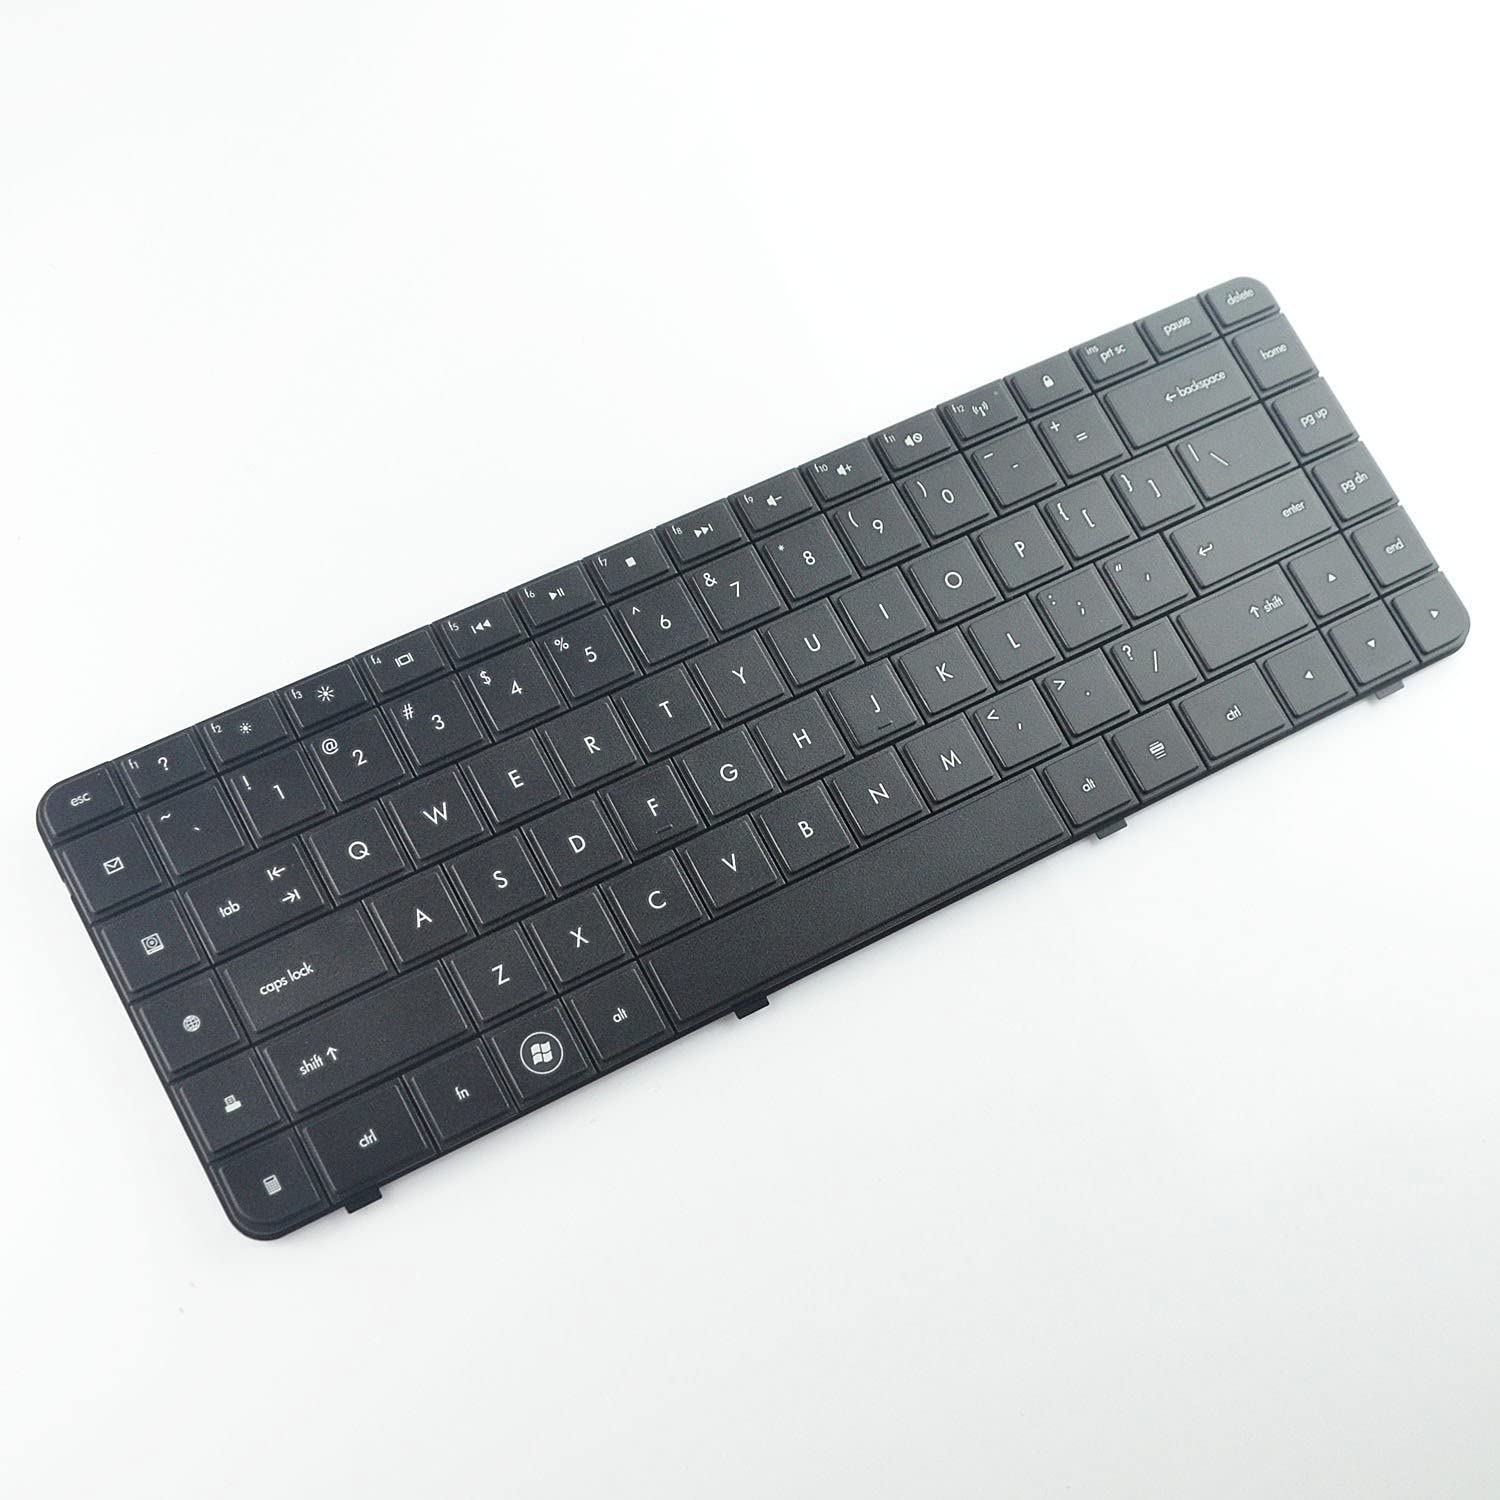 New Keyboard for HP Compaq Presario CQ57 CQ-57 CQ57- 229wm CQ57-214nr CQ57-310us CQ57-319WM CQ57-339WM QE264UA CQ57-410US A7A49UA US KeyboardUS Layout PCRepair